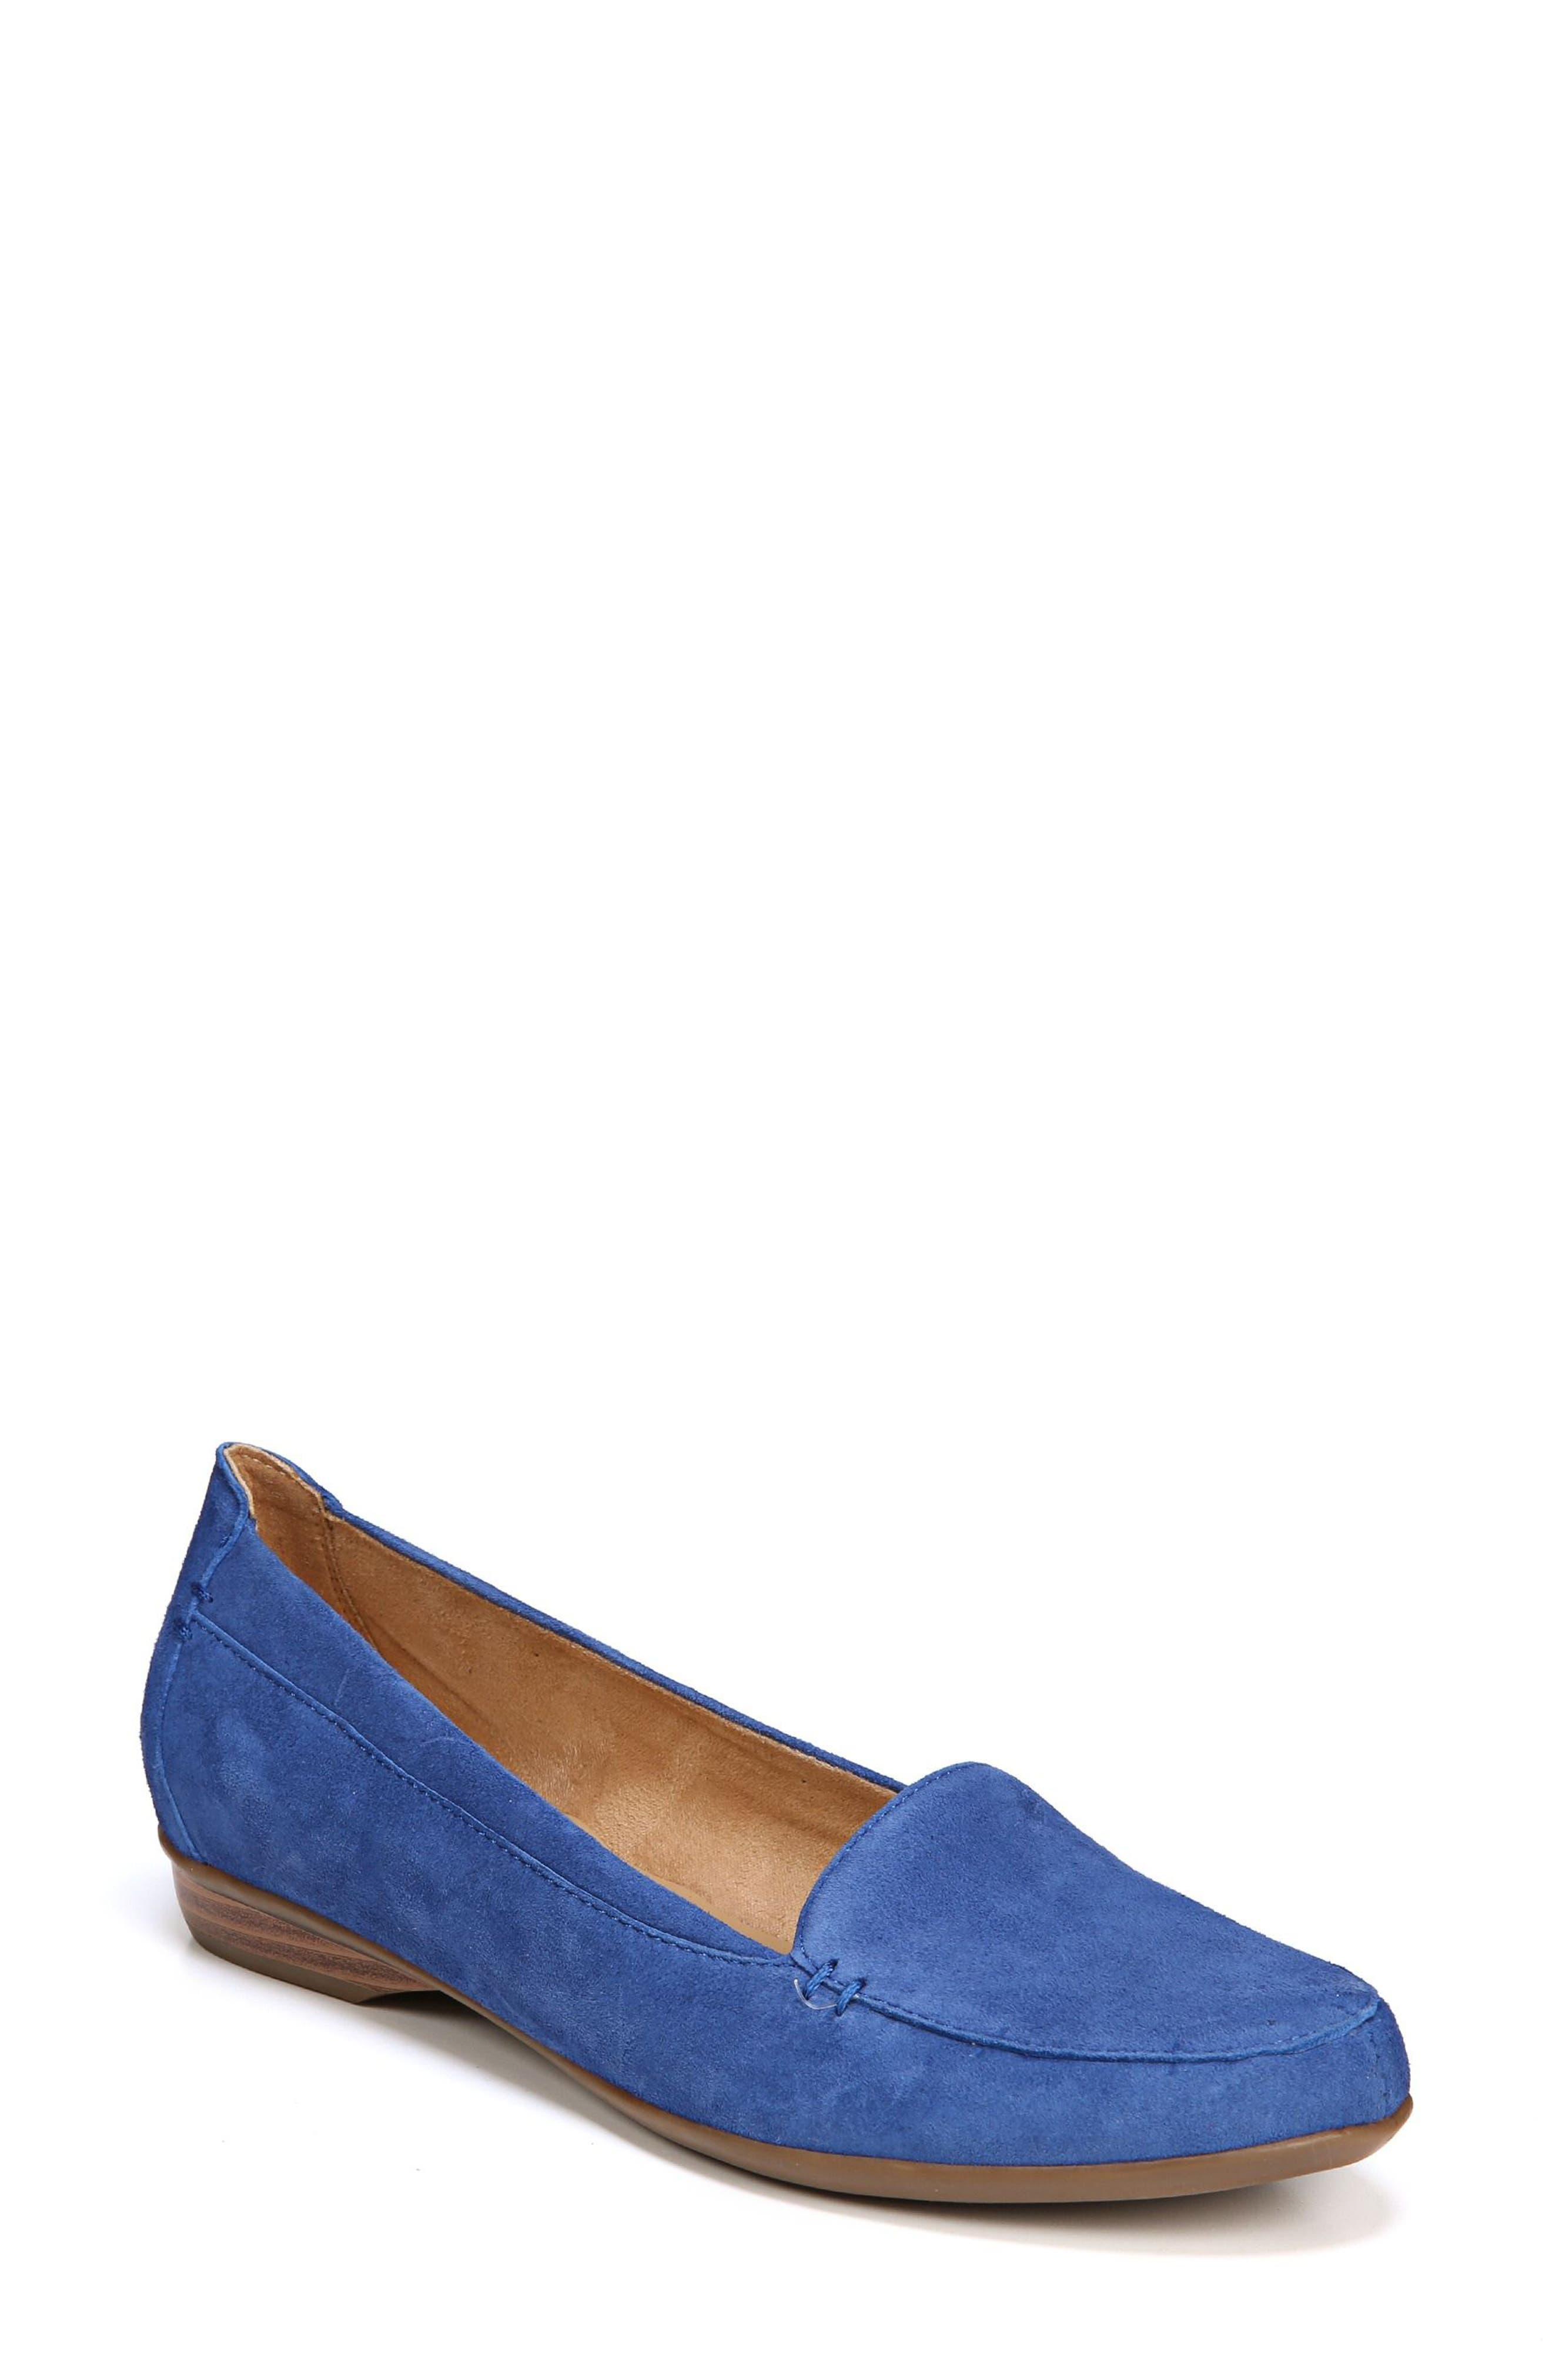 NATURALIZER, 'Saban' Leather Loafer, Main thumbnail 1, color, FRENCH BLUE SUEDE